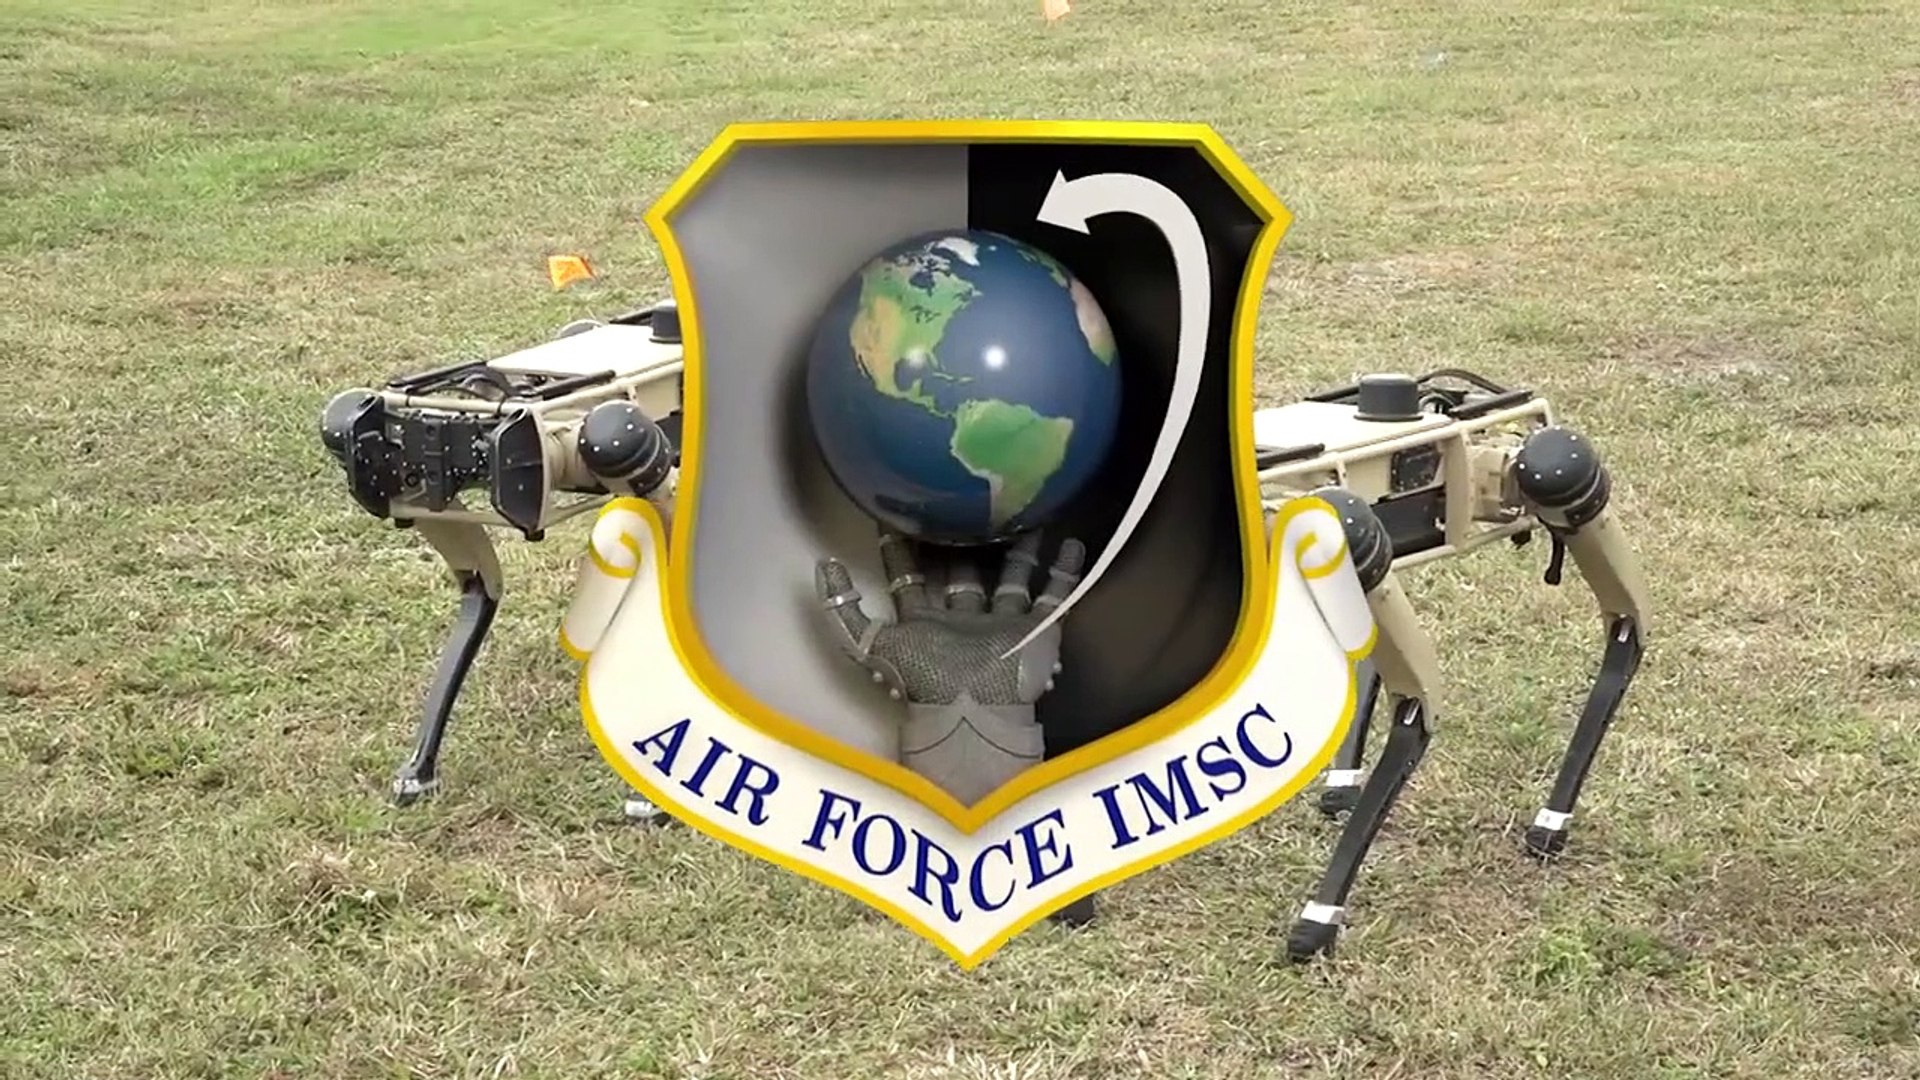 U.S Military • Robot Dogs • Enhance Base Perimeter Defense • Florida 13 Nov 2020